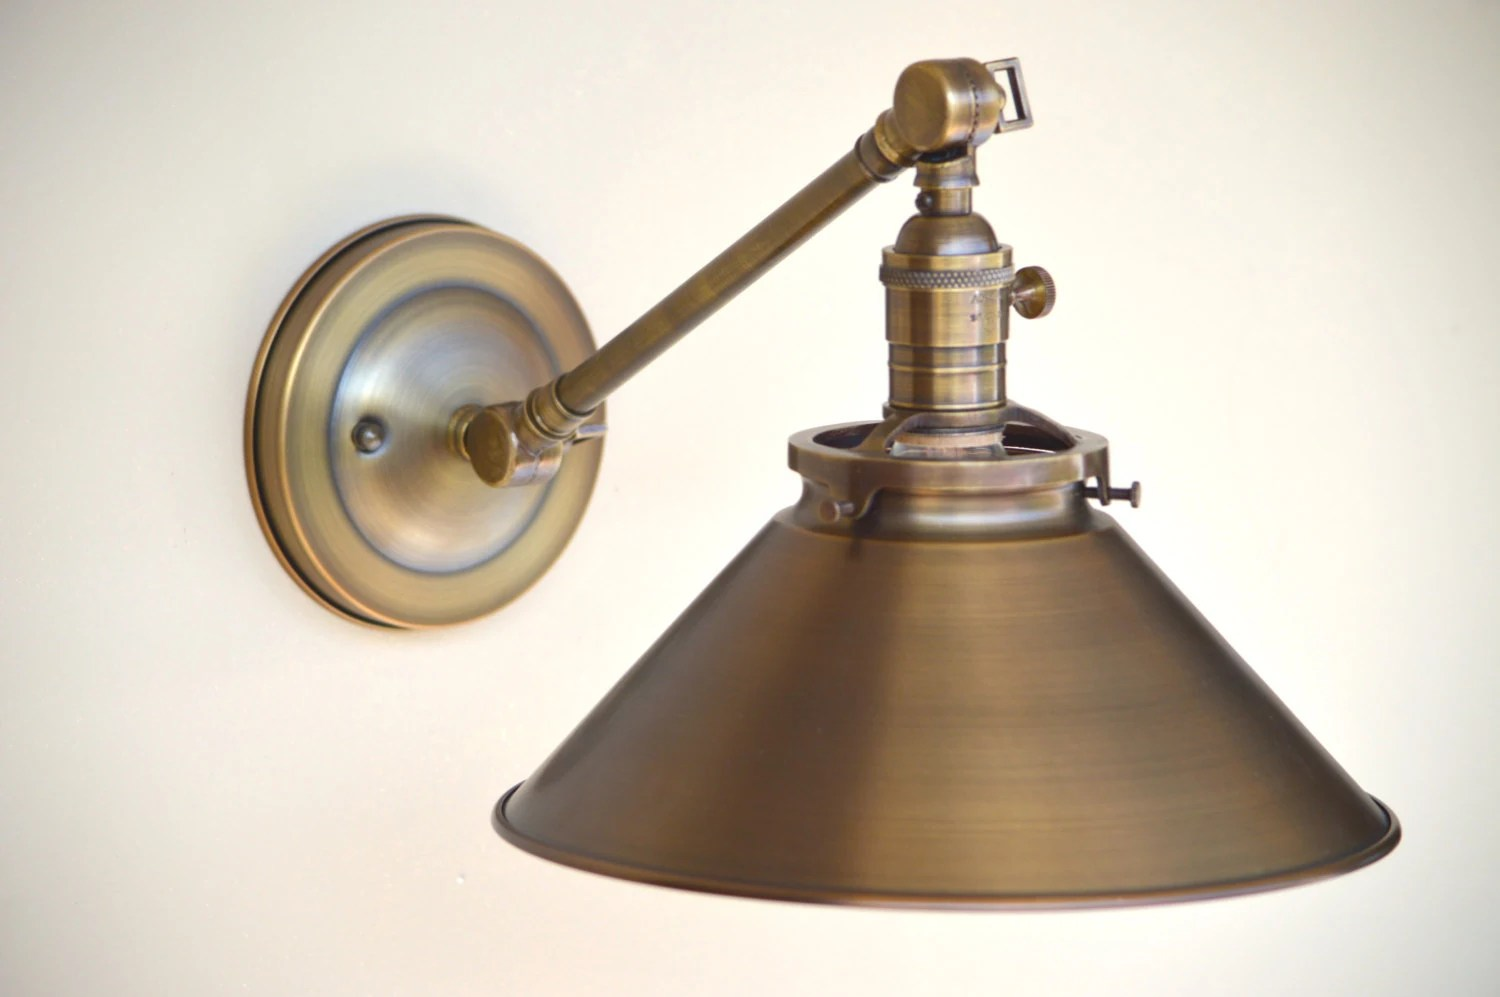 Adjustable Arm Wall Light Sconce Lighting With Spun Brass Shade Adjustable Arm Fixture